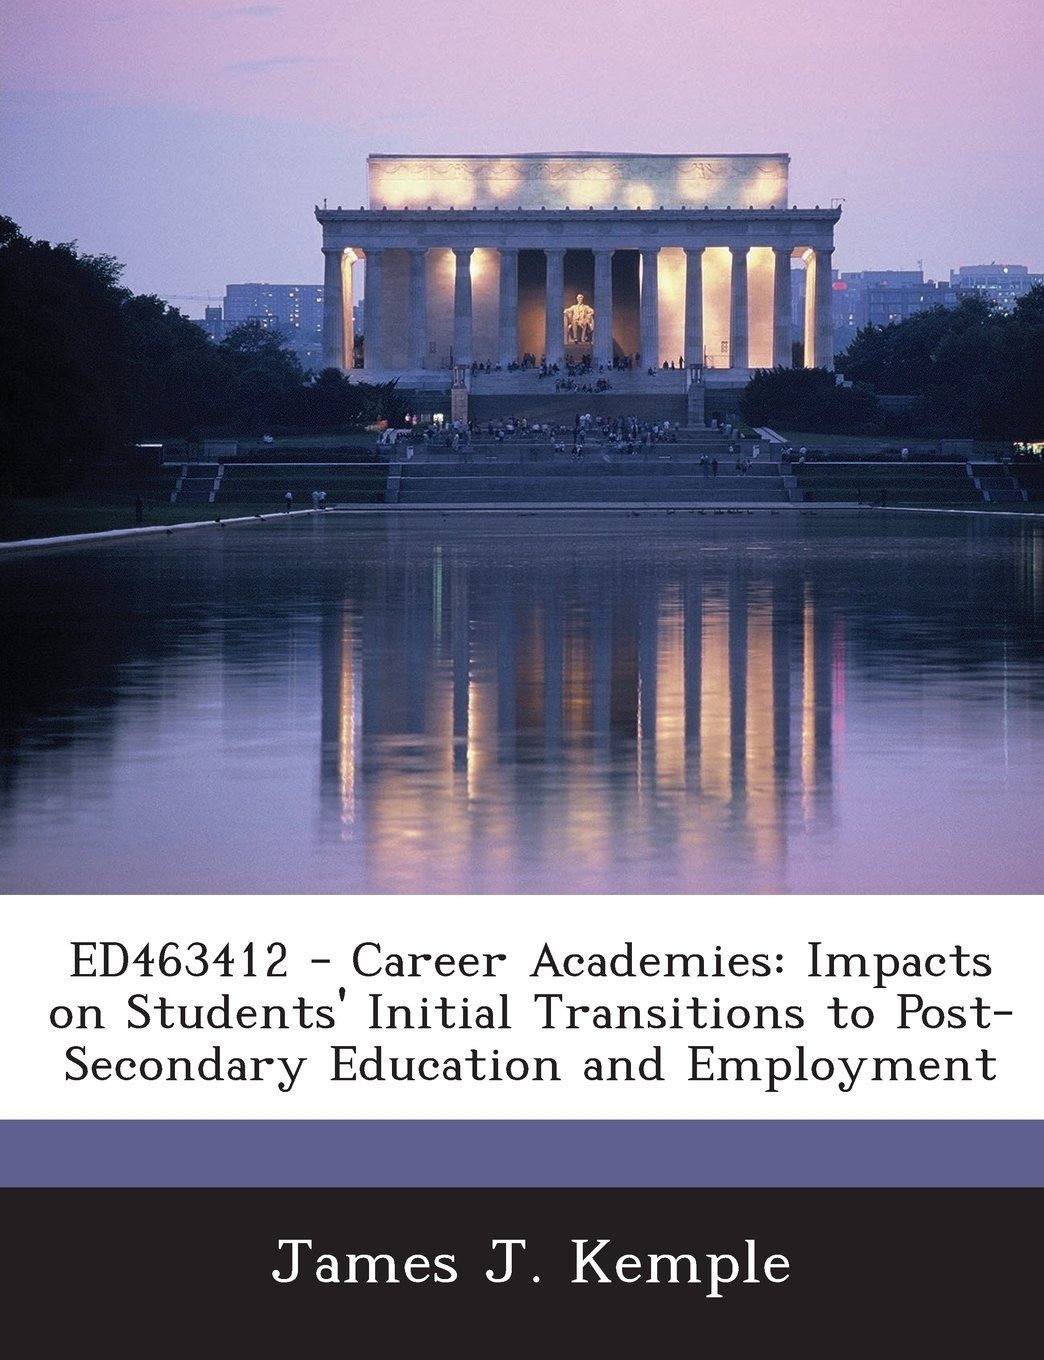 Read Online Ed463412 - Career Academies: Impacts on Students' Initial Transitions to Post-Secondary Education and Employment pdf